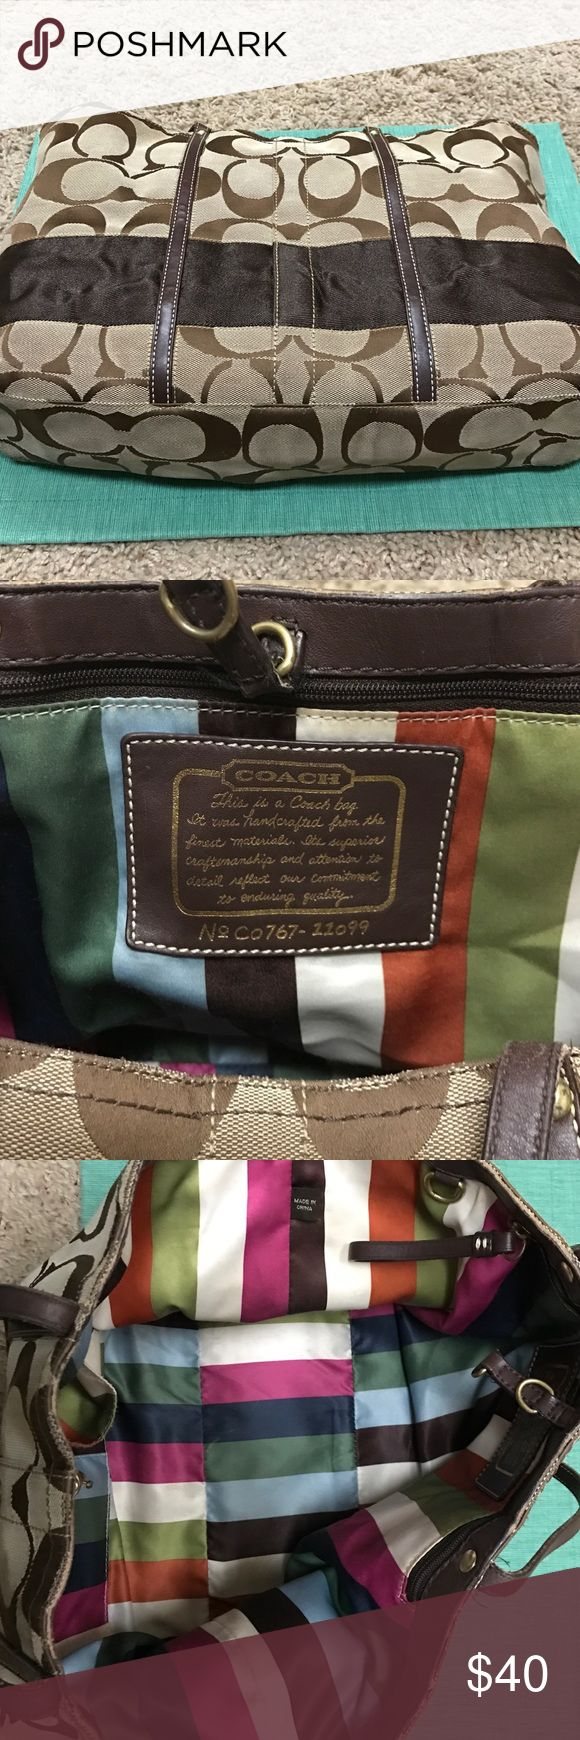 Coach Signature Stripe Purse Authentic Coach Shoulder Bag With Brown Signature C Pattern & Fun Colorful Striped Interior - Inside Features 2 Cell Phone Sized Pockets & 1 Zipper Pocket - Wear & tear: Some marks on interior & some fraying on outside corners (See pics) Comes with original Coach dustbag! Coach Bags Shoulder Bags